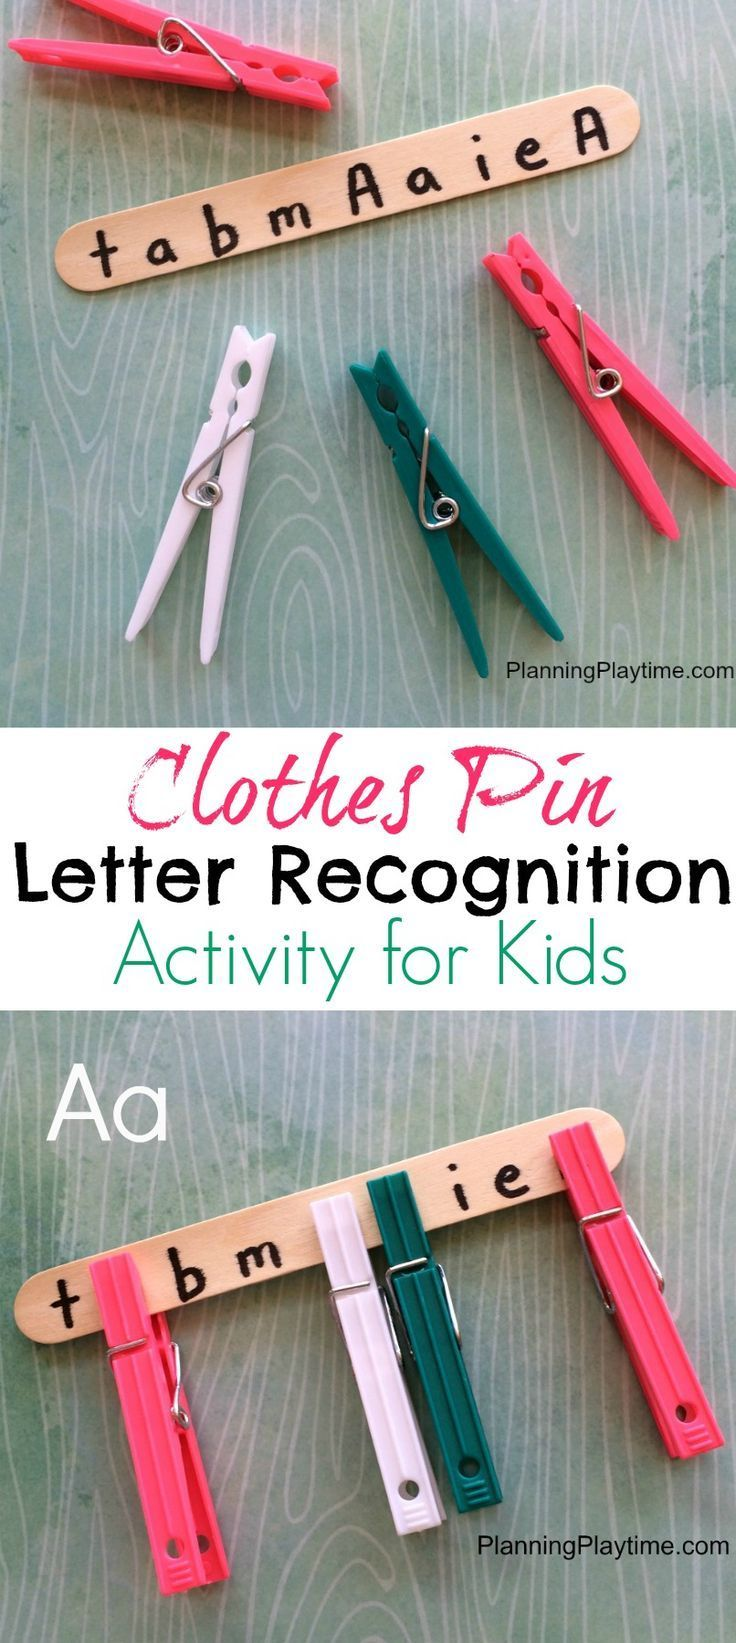 42 best Tutoring images on Pinterest | Kindergarten, Preschool and ...